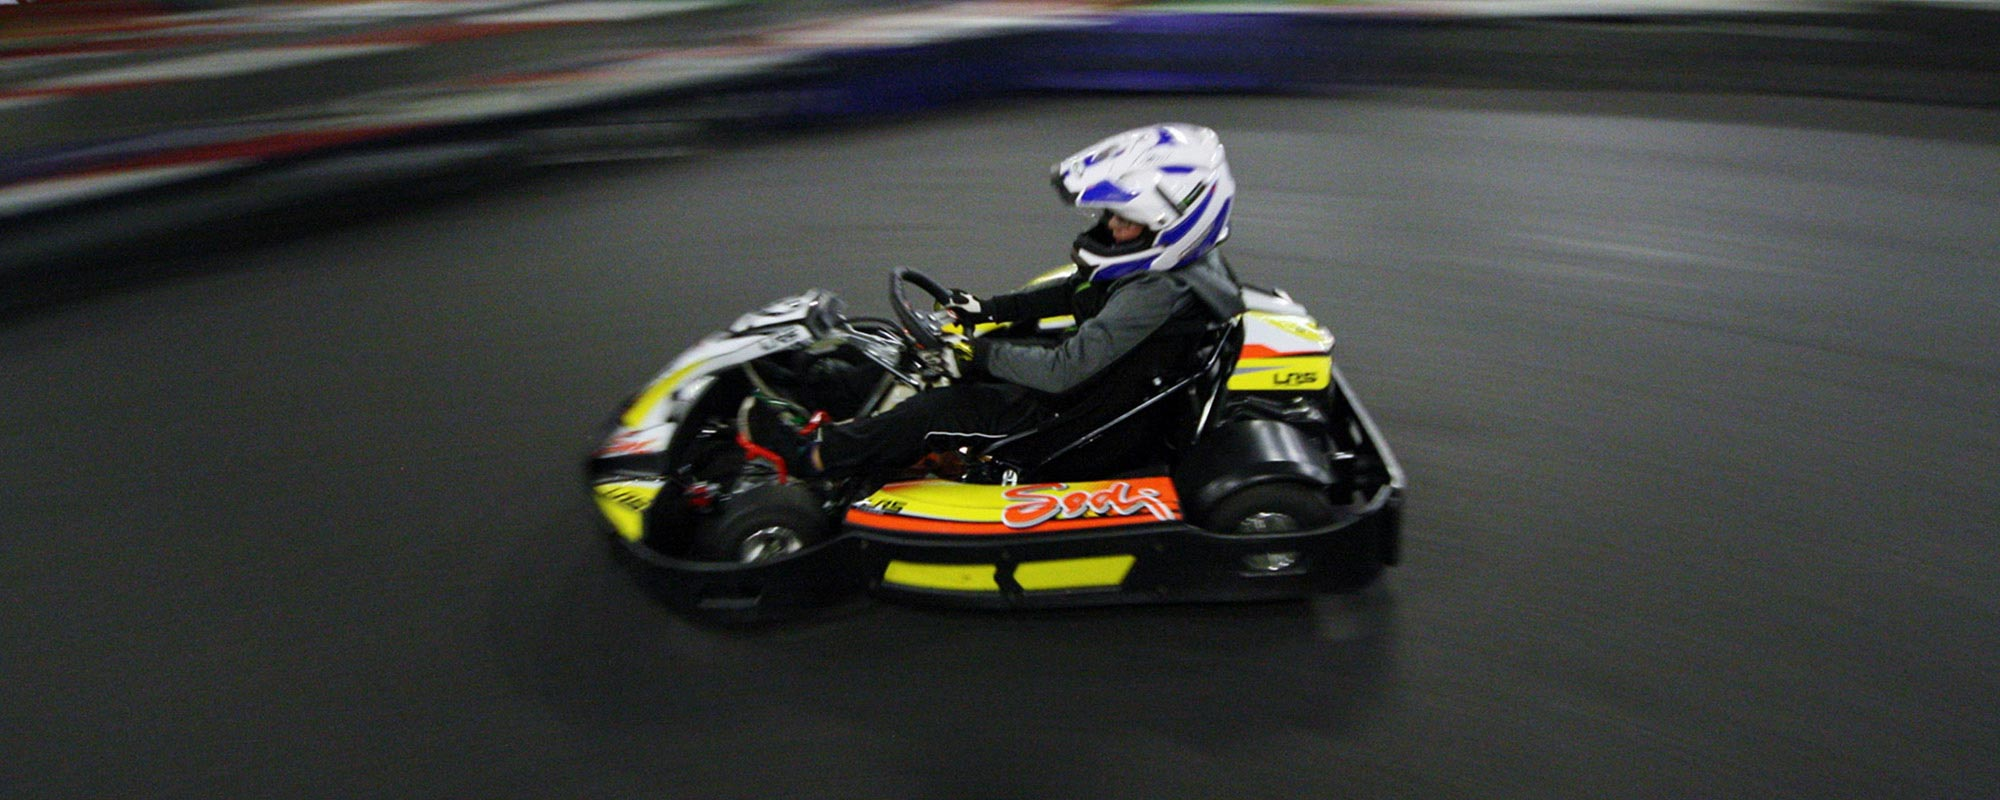 ebafkc-juniorkarting-2000x800-16